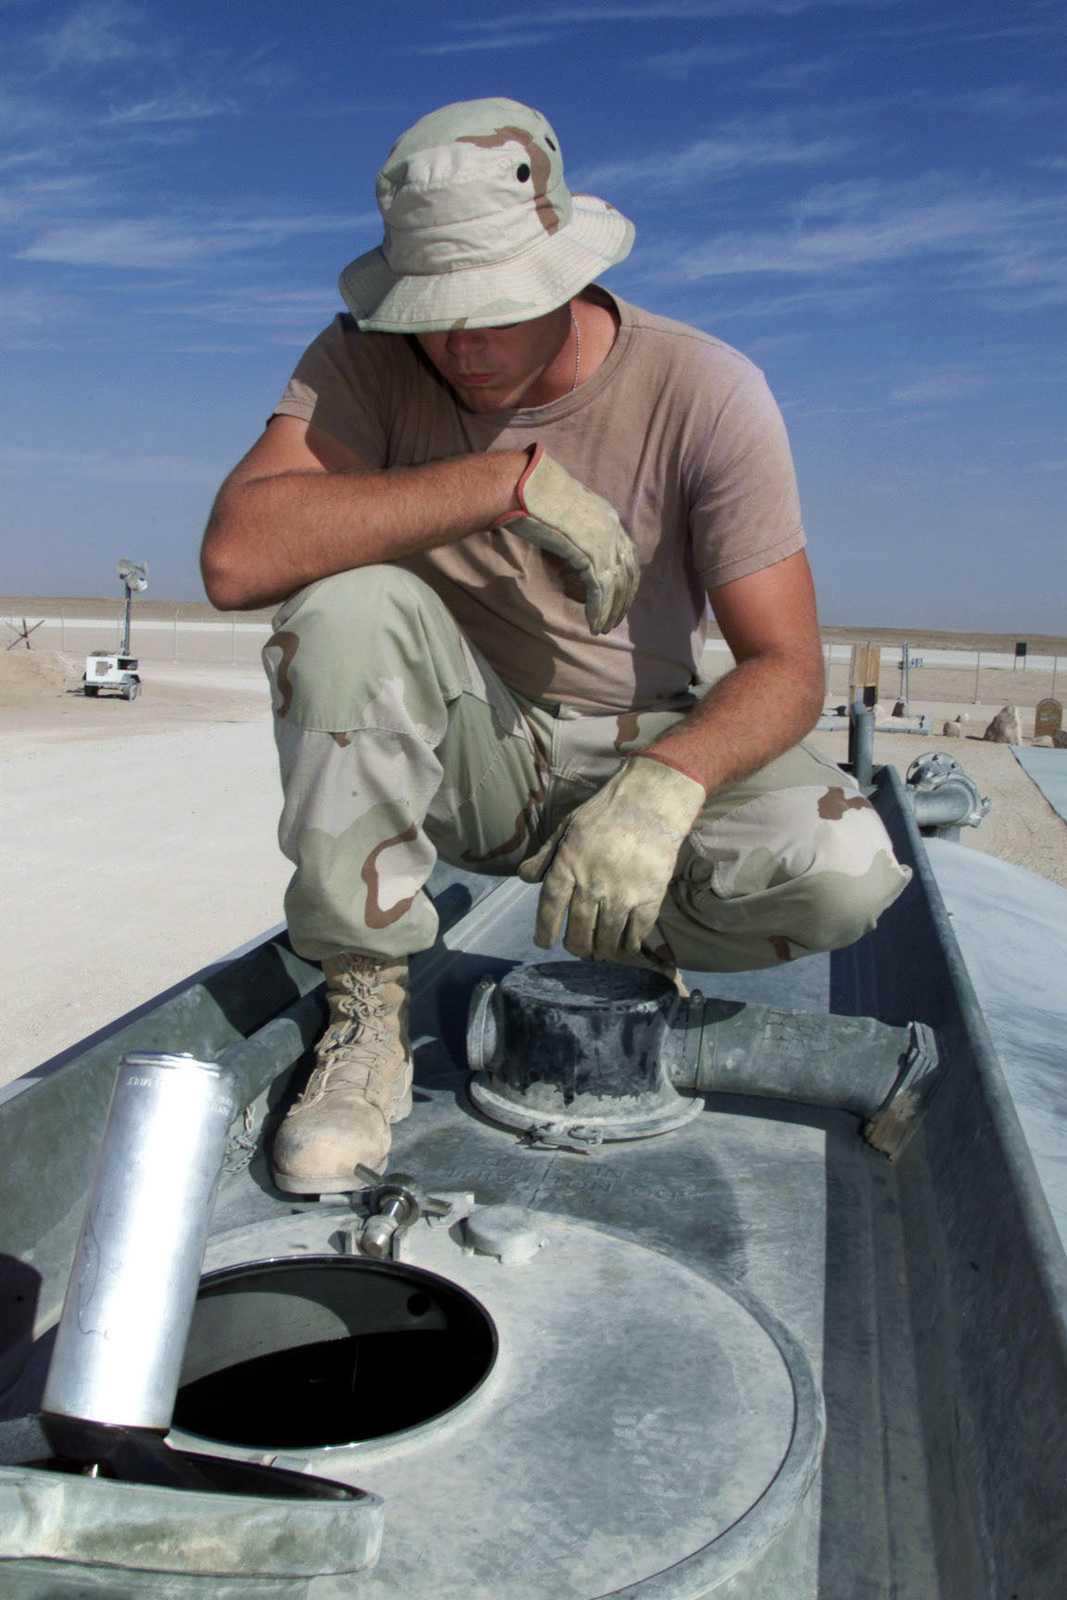 US Air Force AIRMAN First Class Billy Christy, 363rd Expeditionary Supply Squadron, Prince Sultan Air Base, Saudi Arabia, visually checks the level of fuel as it is pumped into his truck. A1C Christy is part of the coalition force here to support Operation SOUTHERN WATCH, a military effort to enforce the no-fly and no-drive zone in Southern Iraq